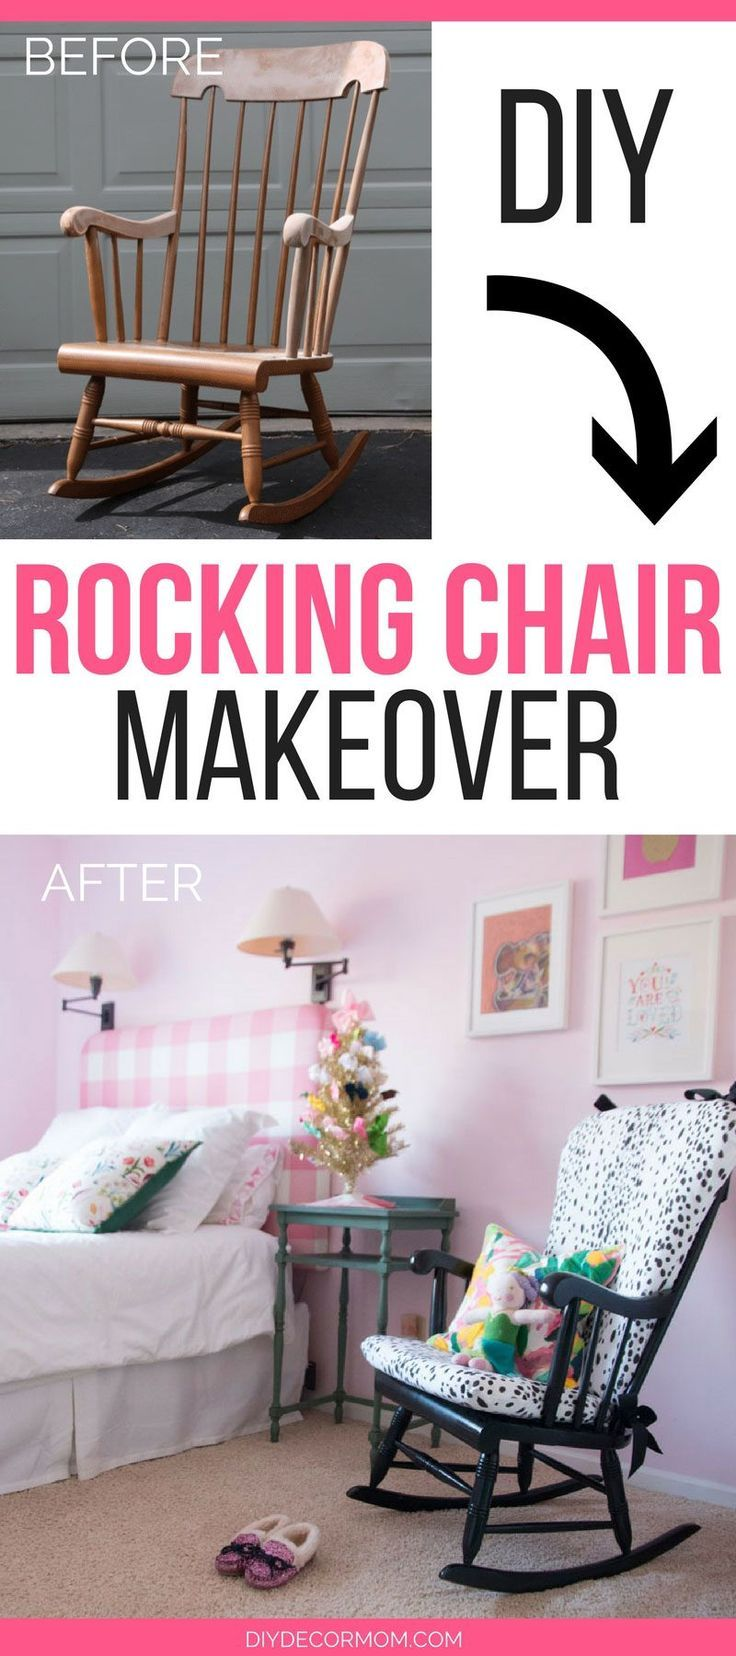 OMG! This upholstered rocking chair cushion makeover is crazy! If you have an old rocking chair you want to update, this tutorial is perfect! See the best tricks to save time and money on it here-- srcset=